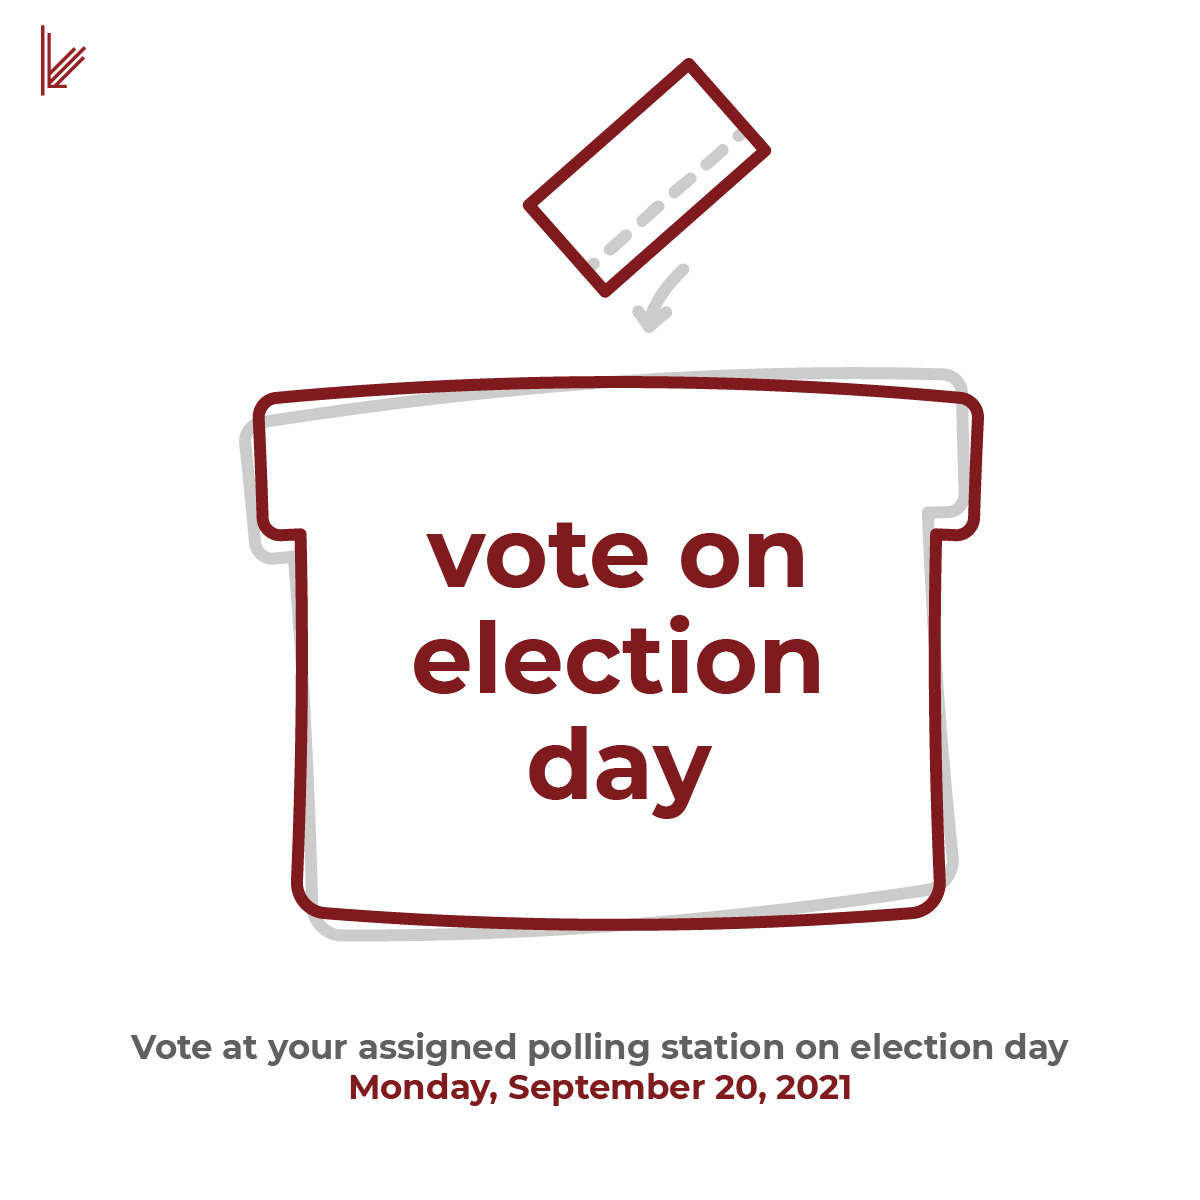 on_election_day.png